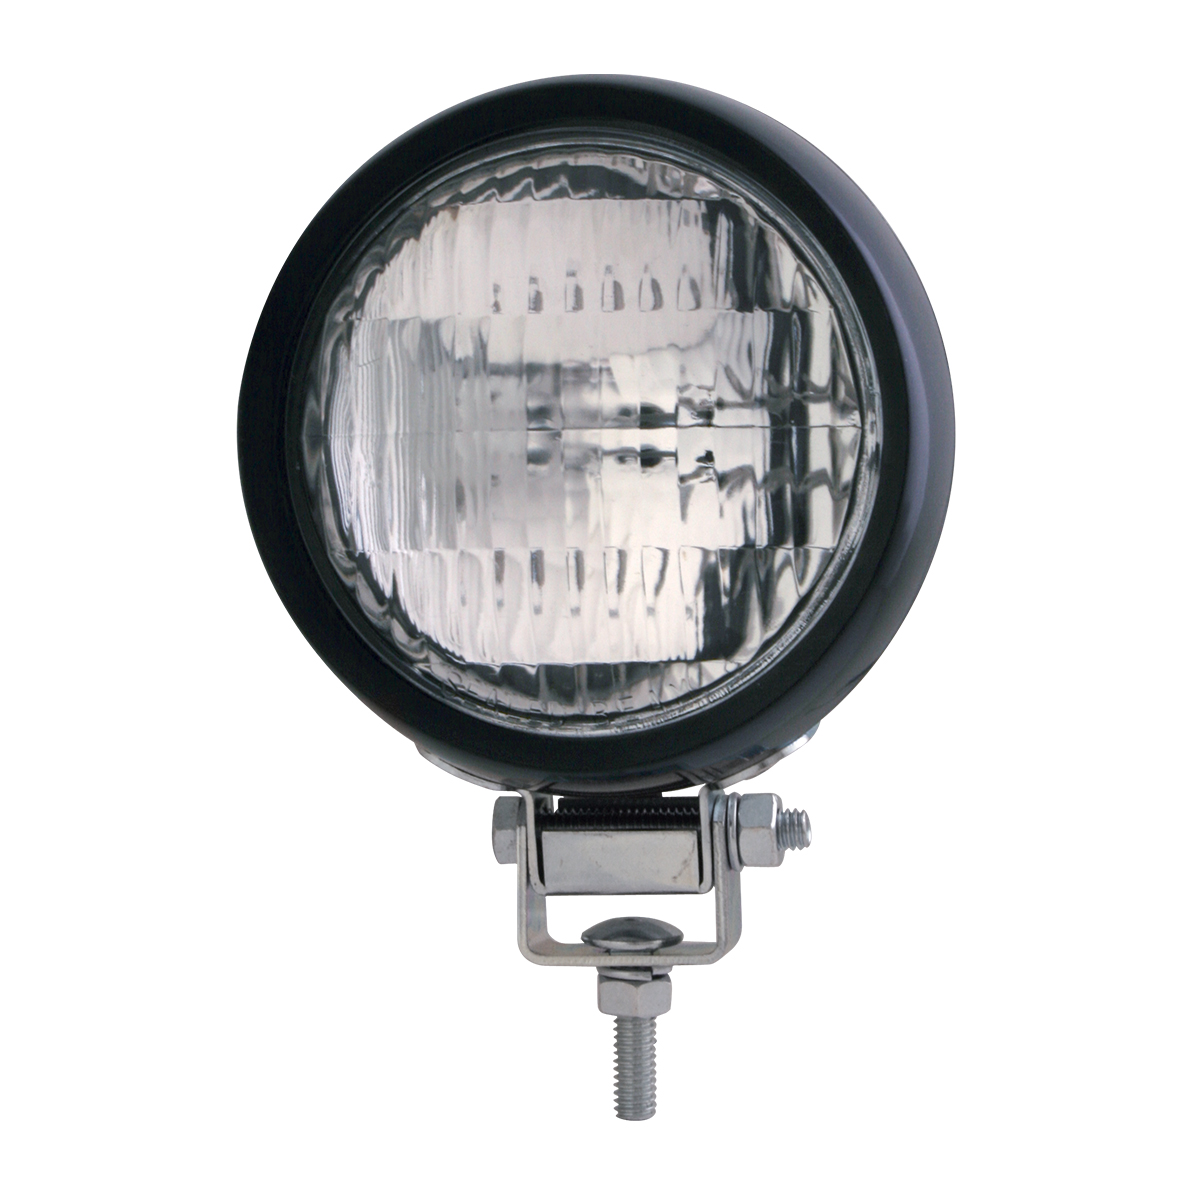 Led Lights For Utility Tractors : ½ tractor utility lights grand general auto parts